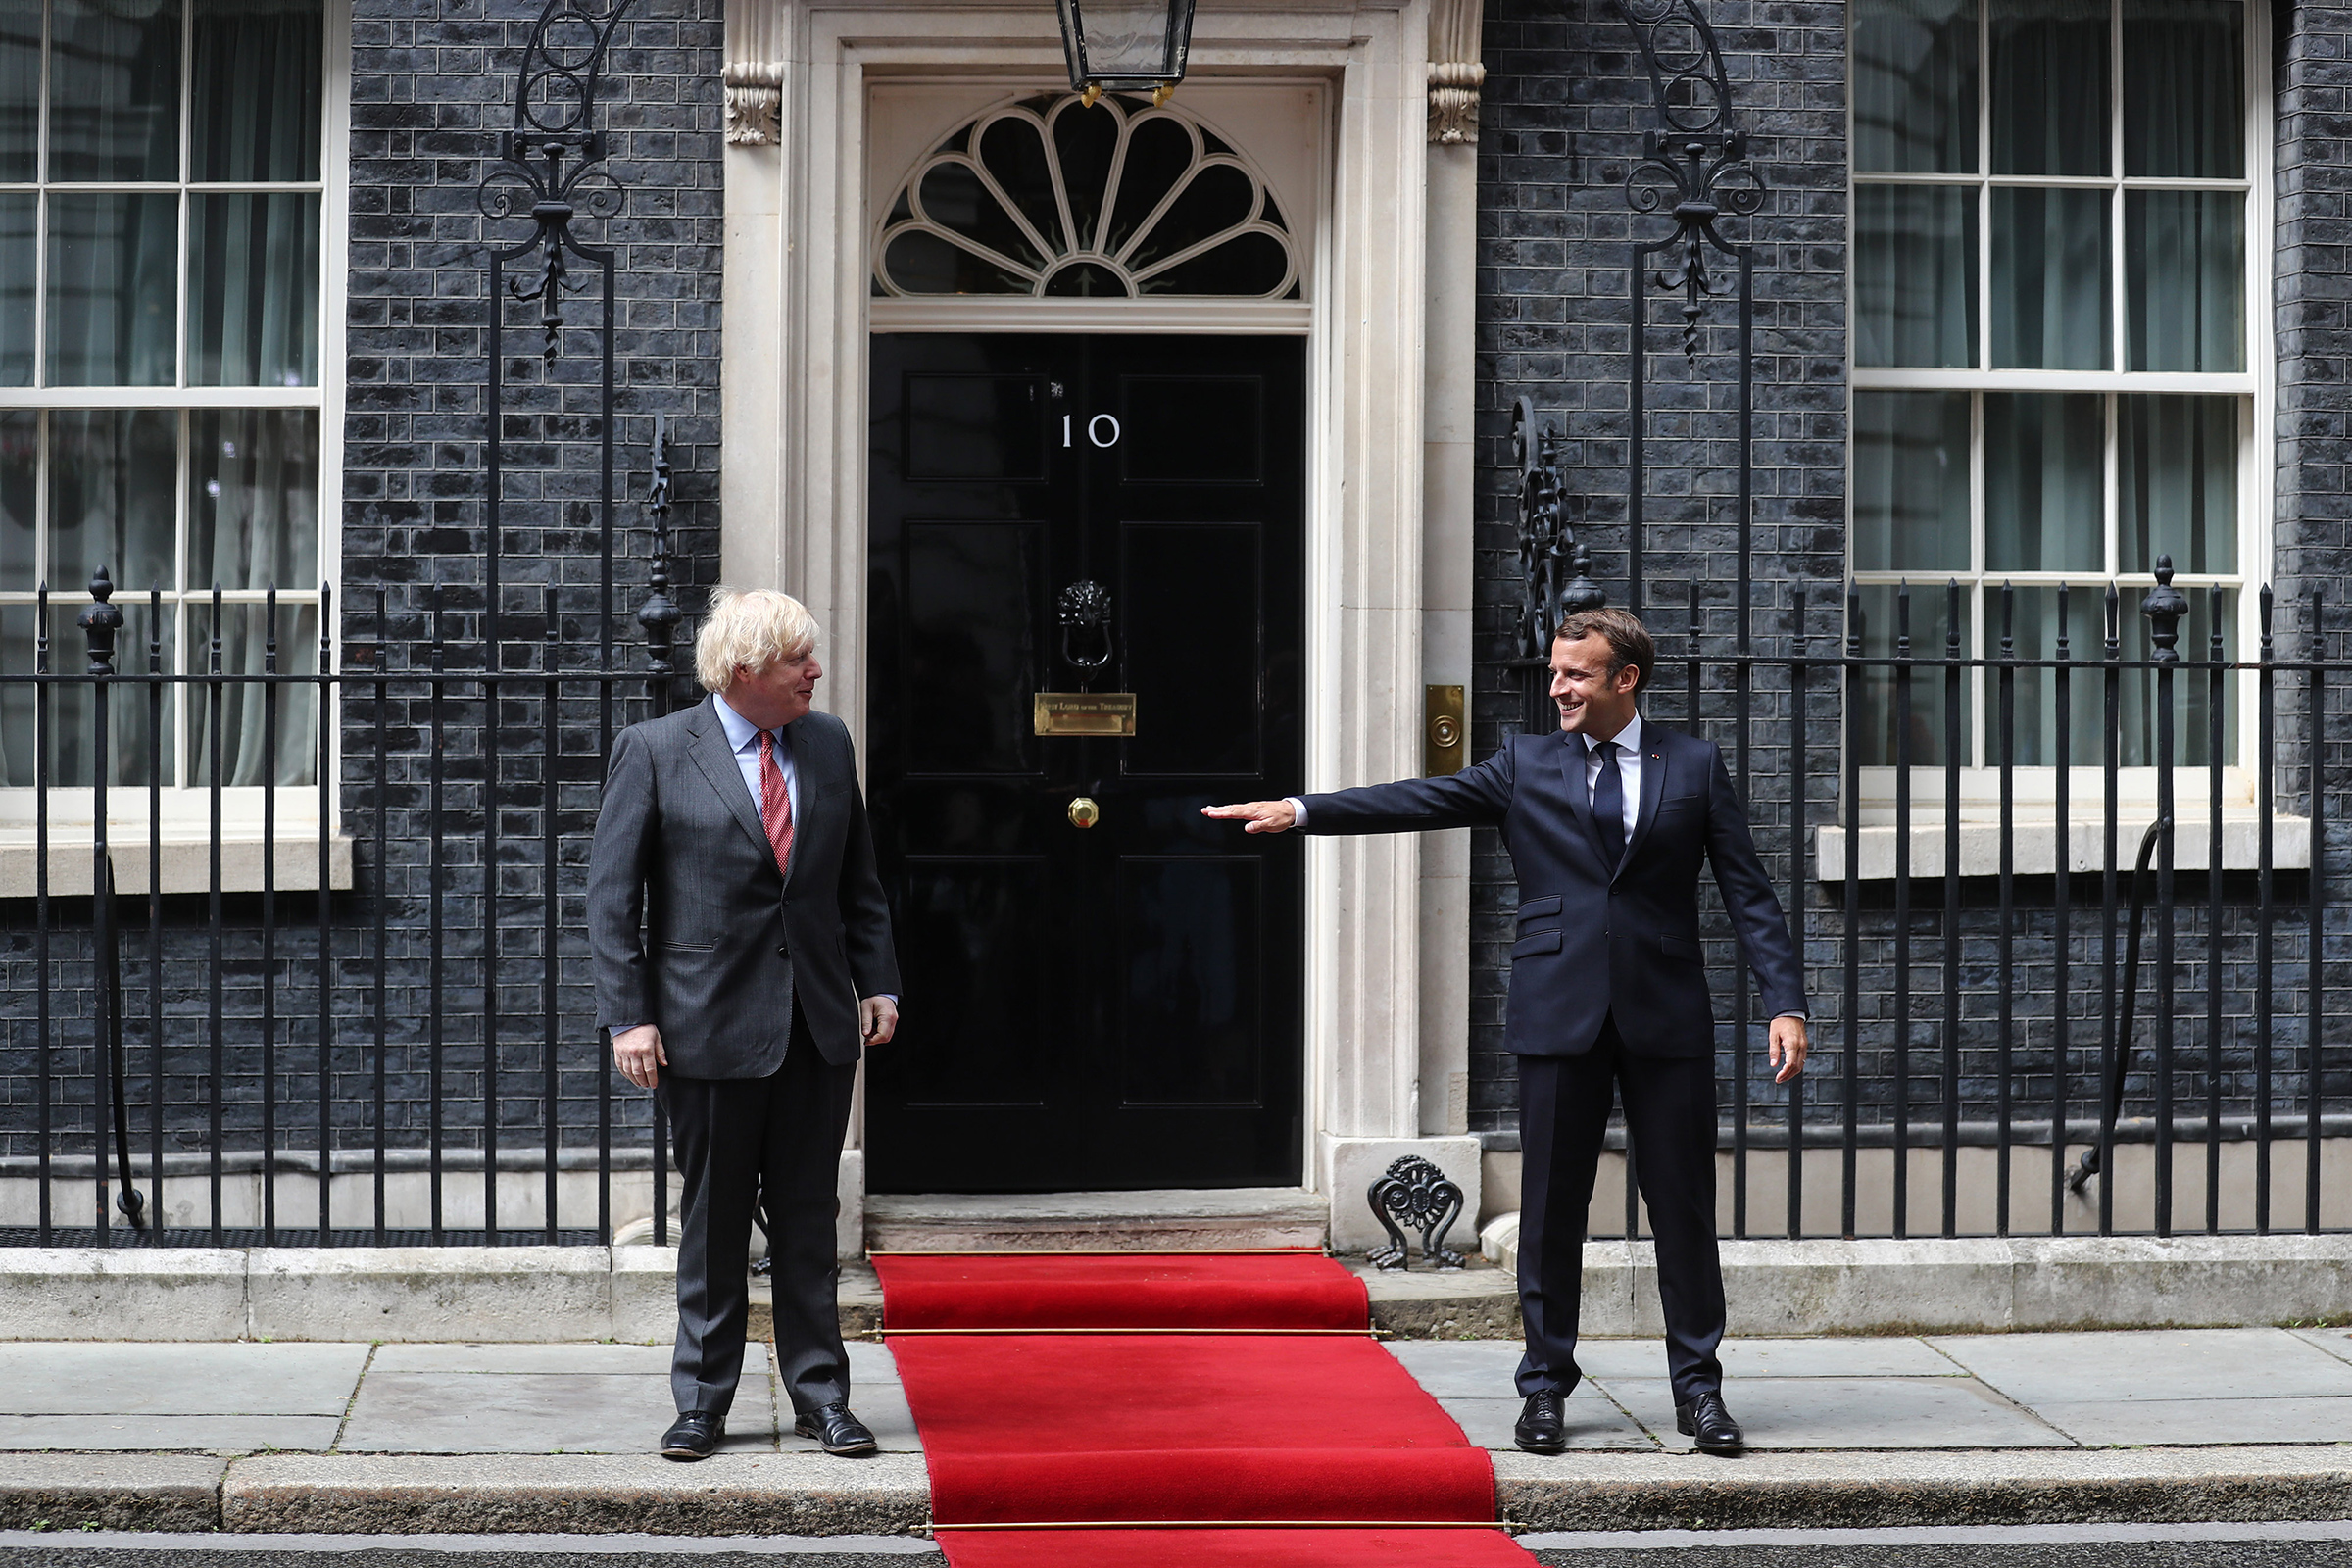 Boris Johnson, prime minister of the United Kingdom, and French President Emmanuel Macron stand socially distanced while posing for photographs at 10 Downing Street in London on June 18.